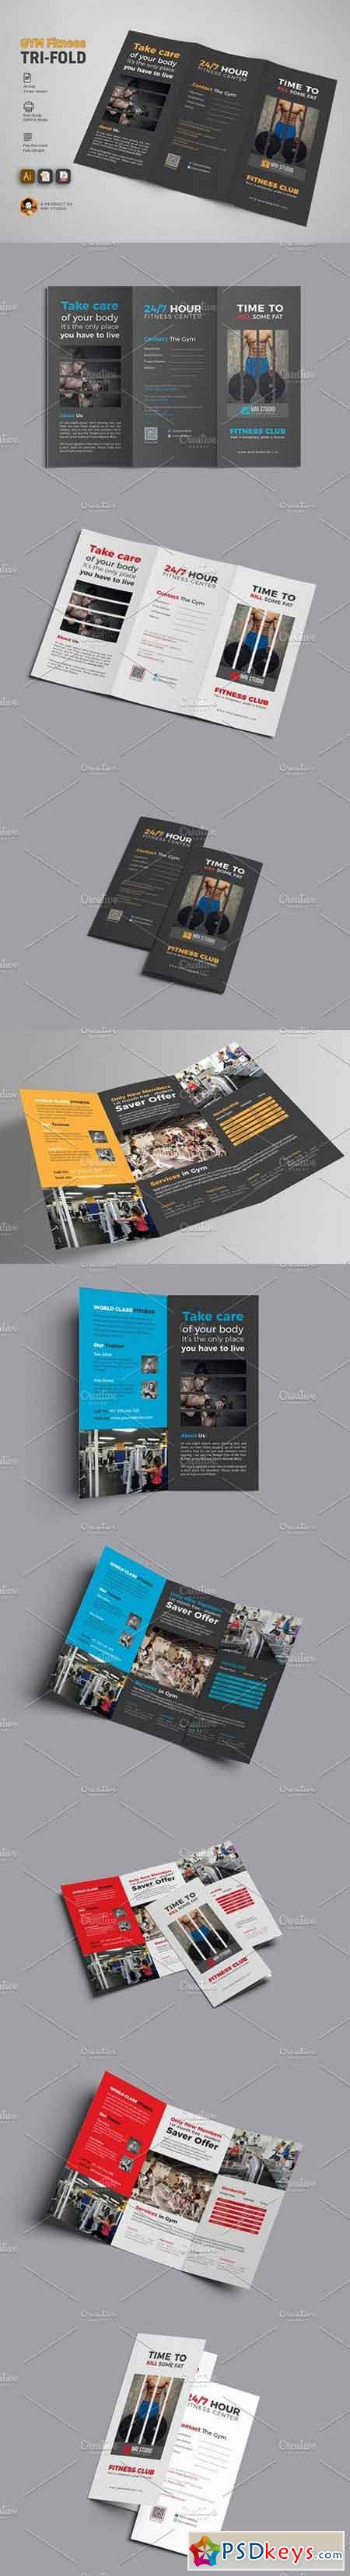 GYM Trifold Brochure 1793093